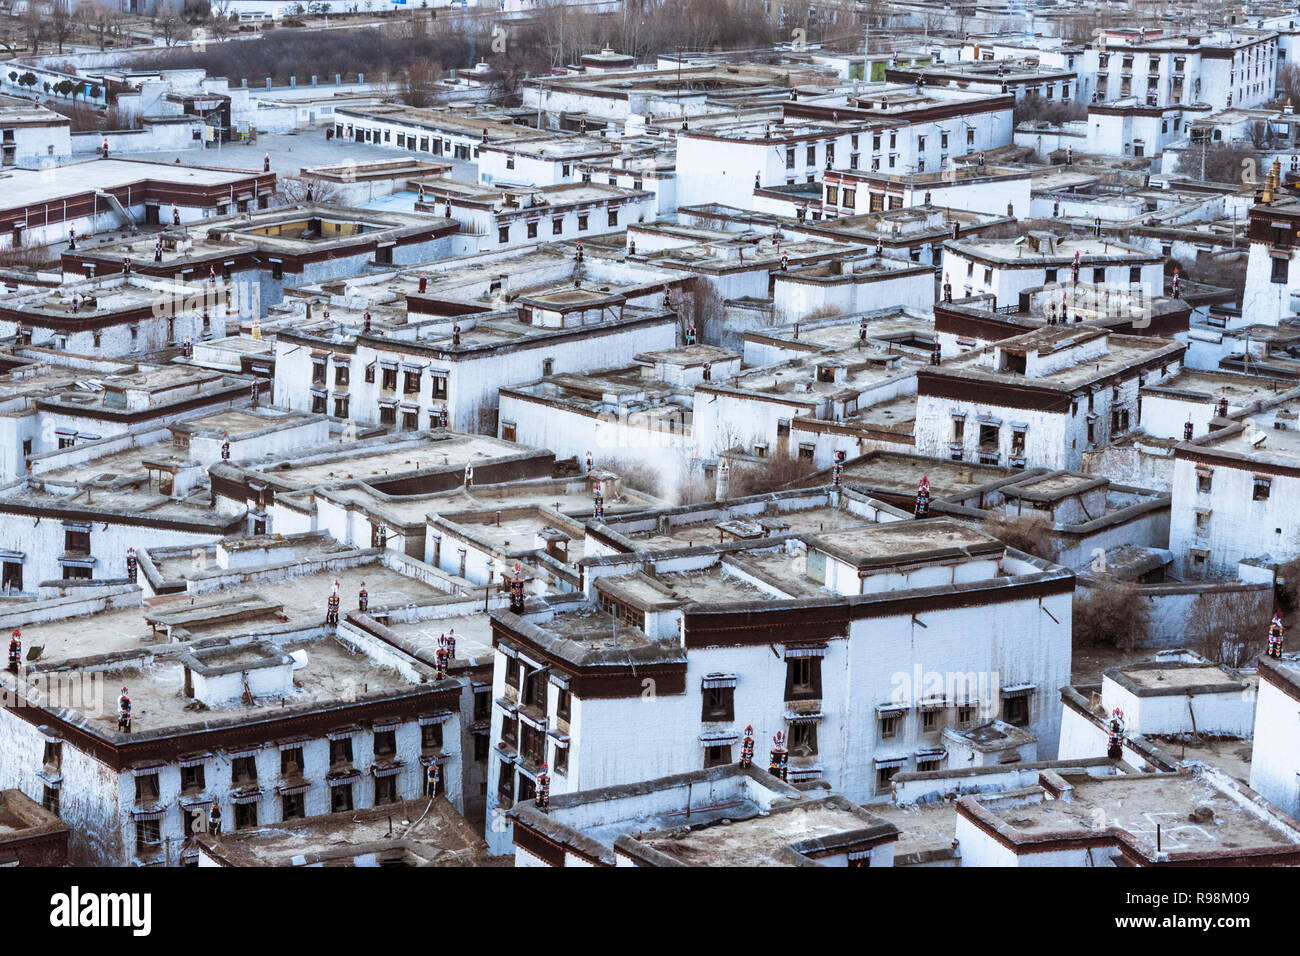 Shigatse, Tibet Autonomous Region, China : Cluster of houses of the monks at Tashi Lhunpo Monastery, the traditional seat of the Panchen Lama founded  - Stock Image